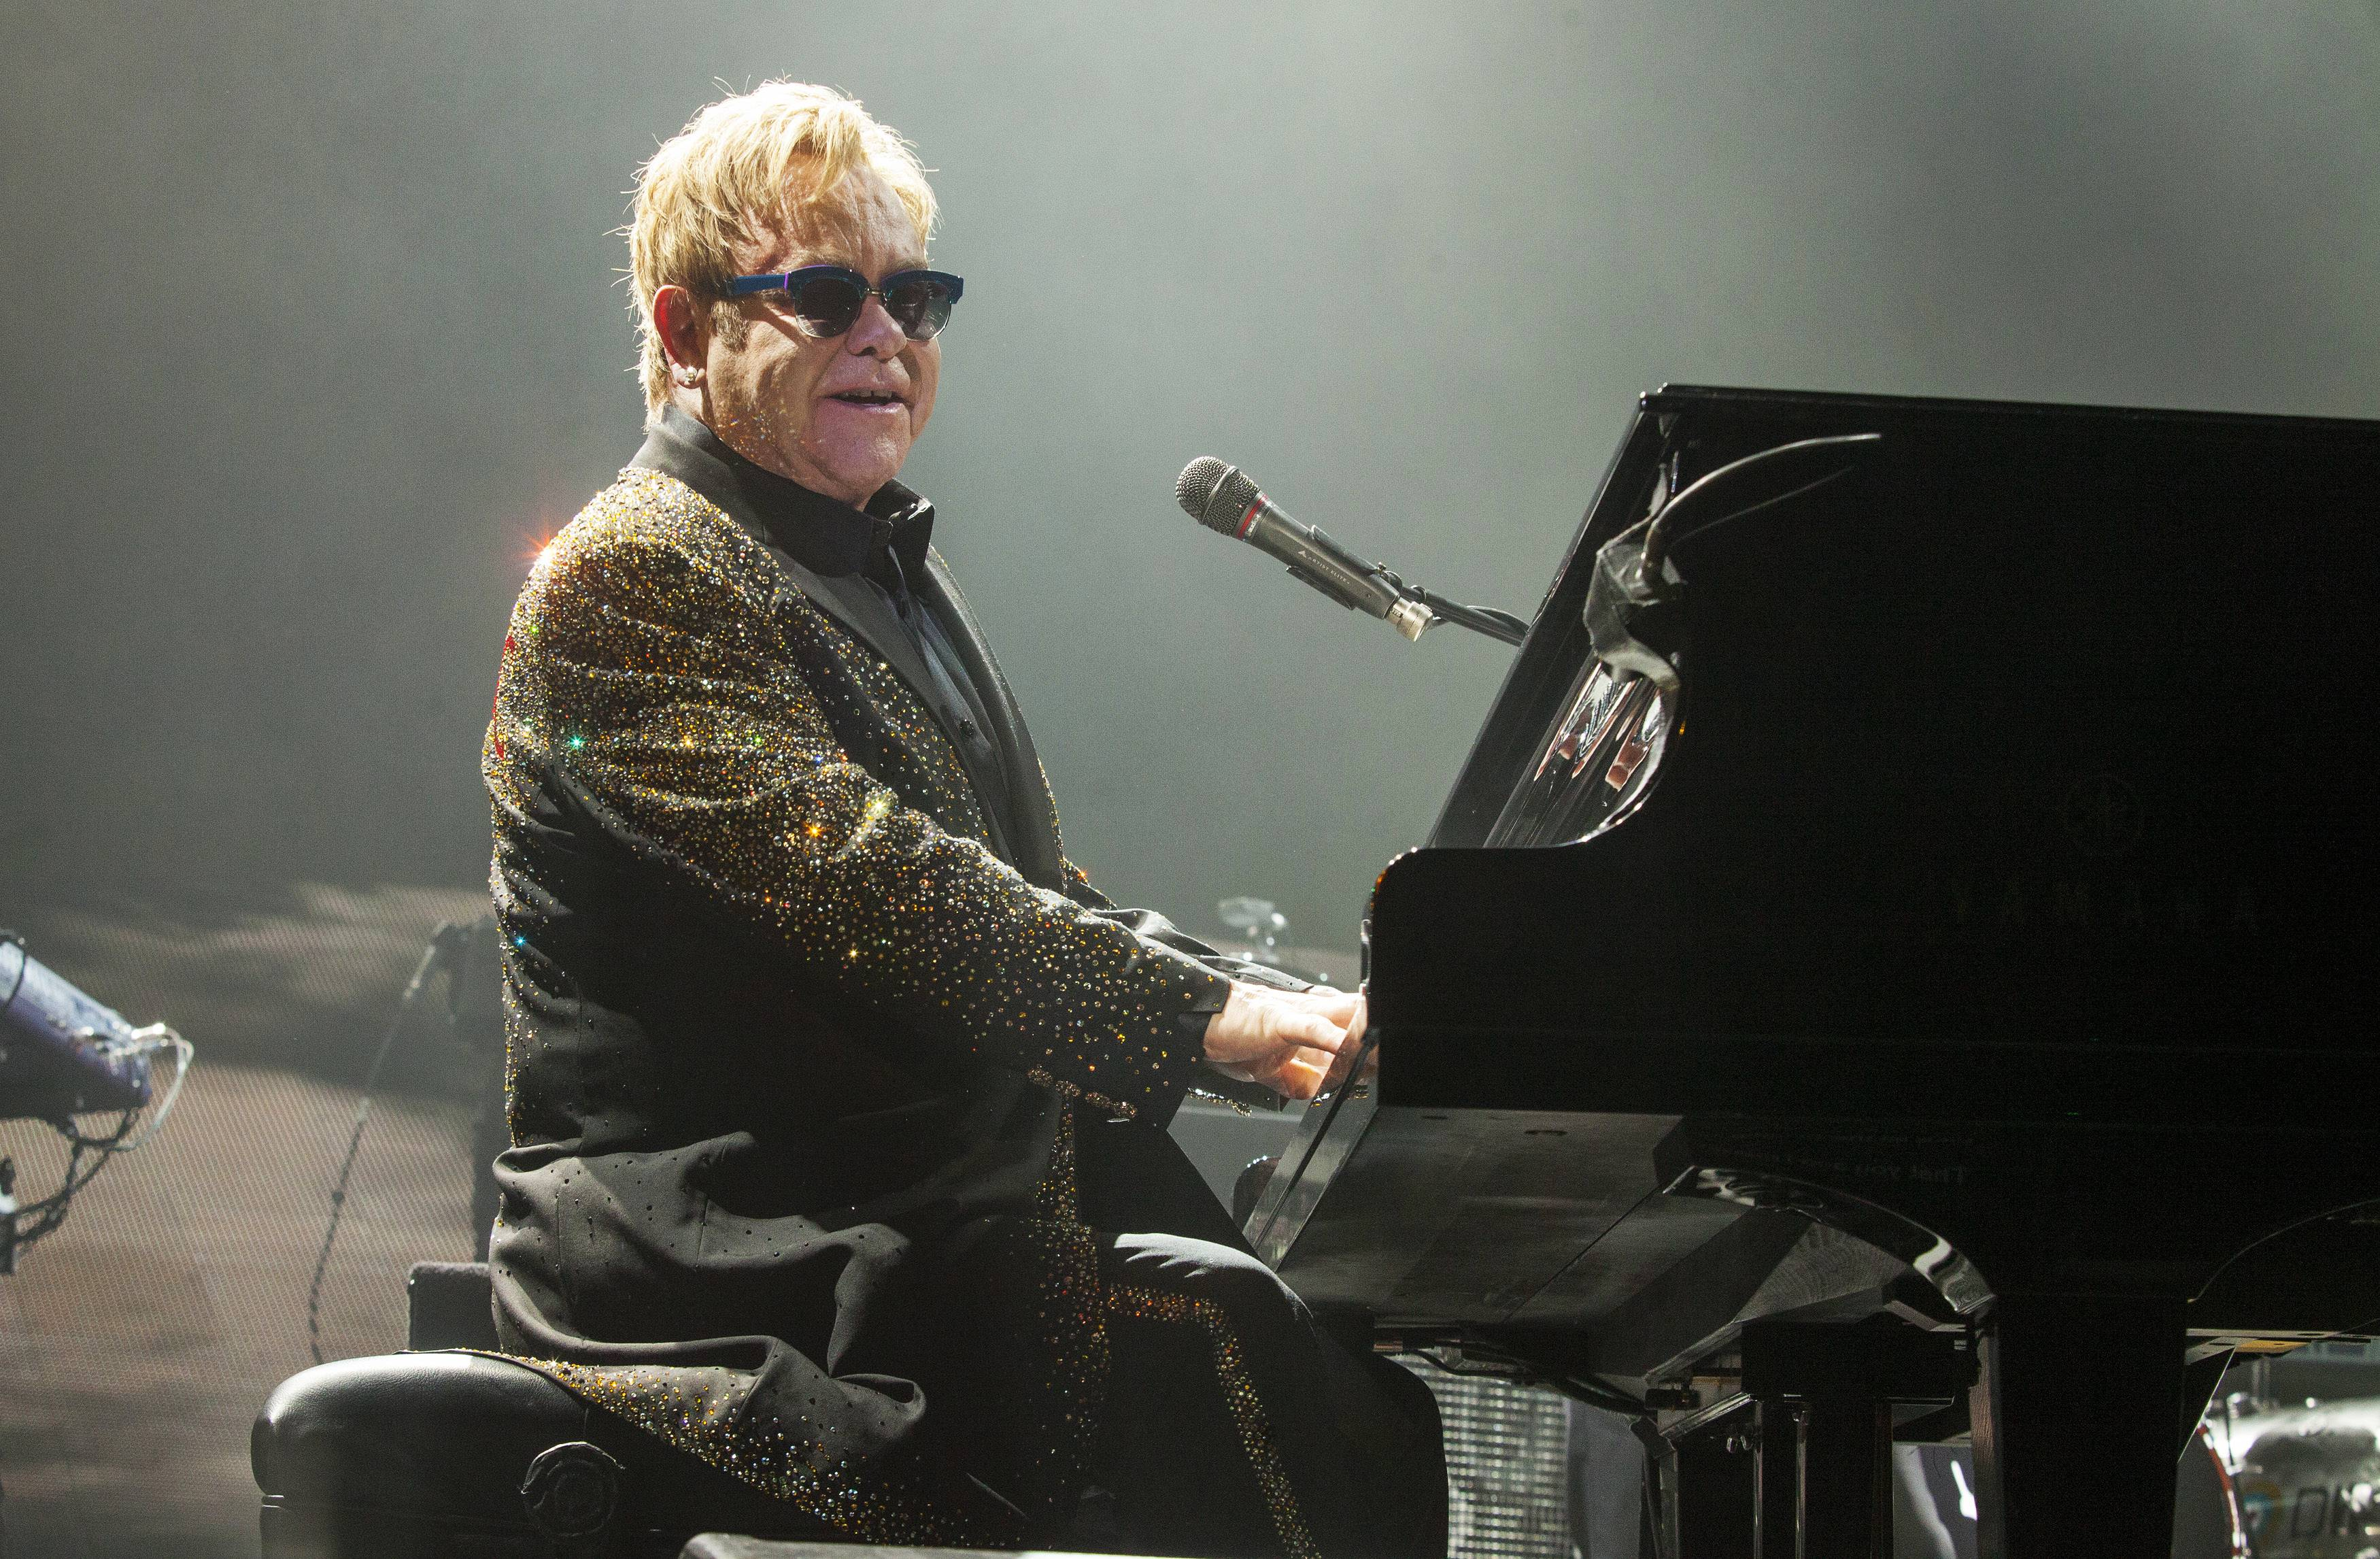 Sir Elton John will be making his first appearance at this year's Bonnaroo Music and Arts Festival.